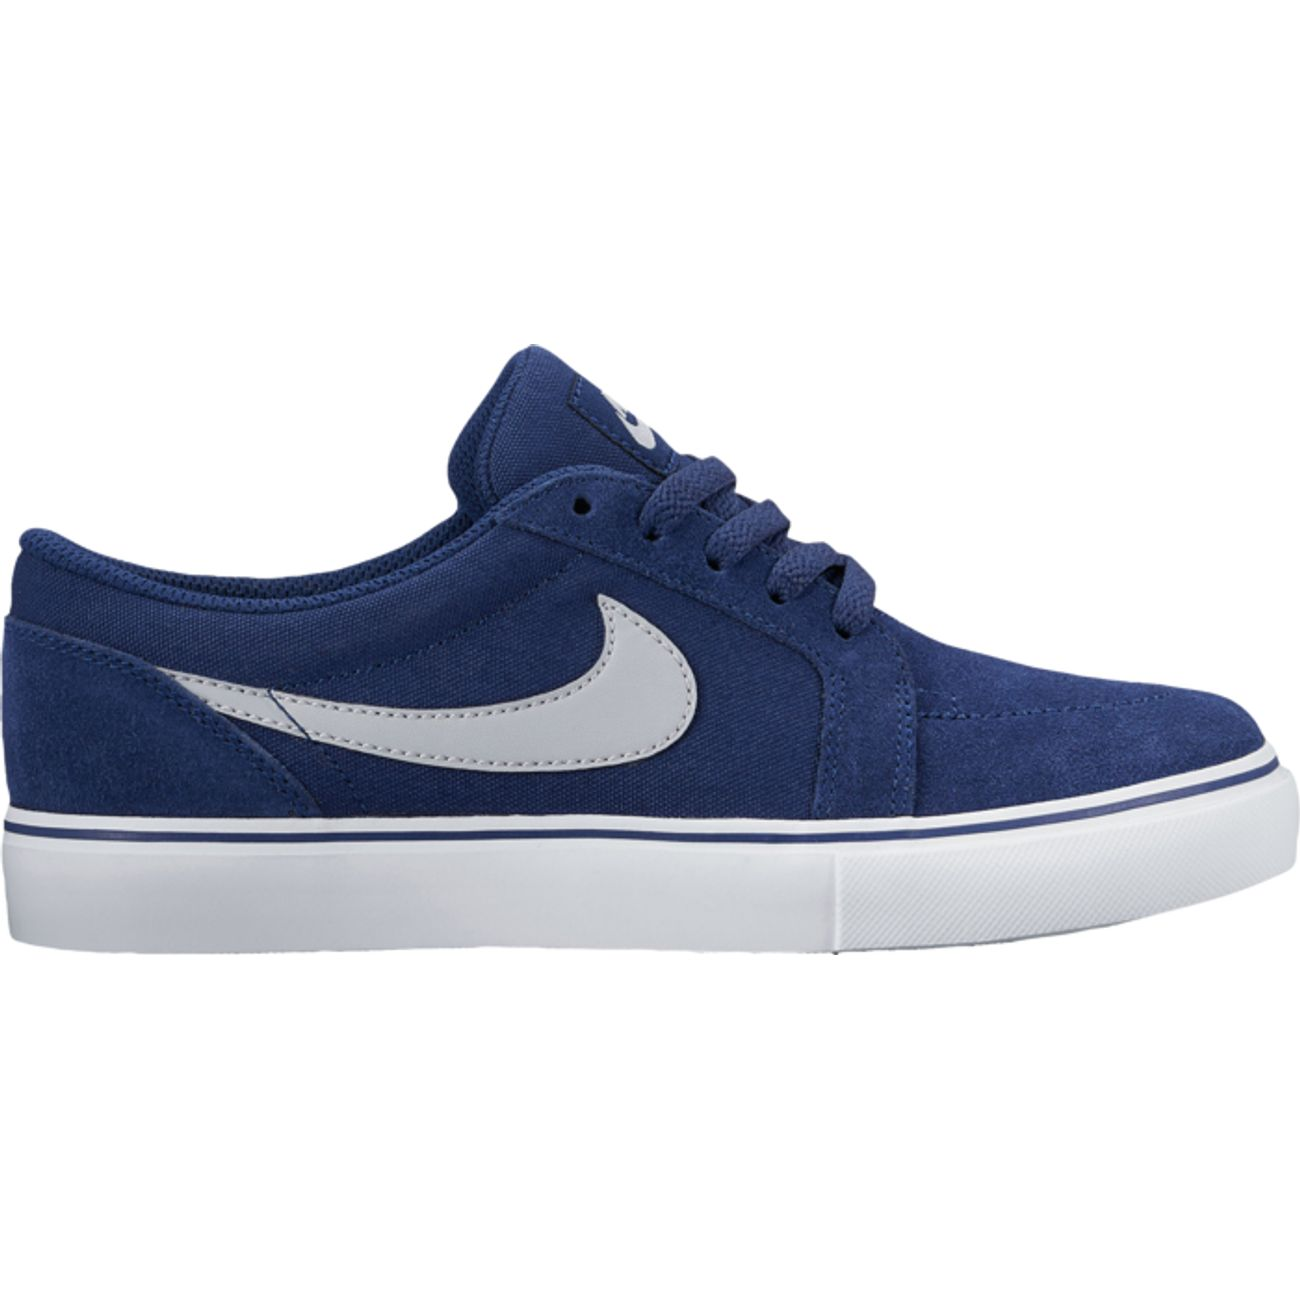 on sale 98817 3a856 CHAUSSURES BASSES NIKE SKATEBOARD SATIRE II